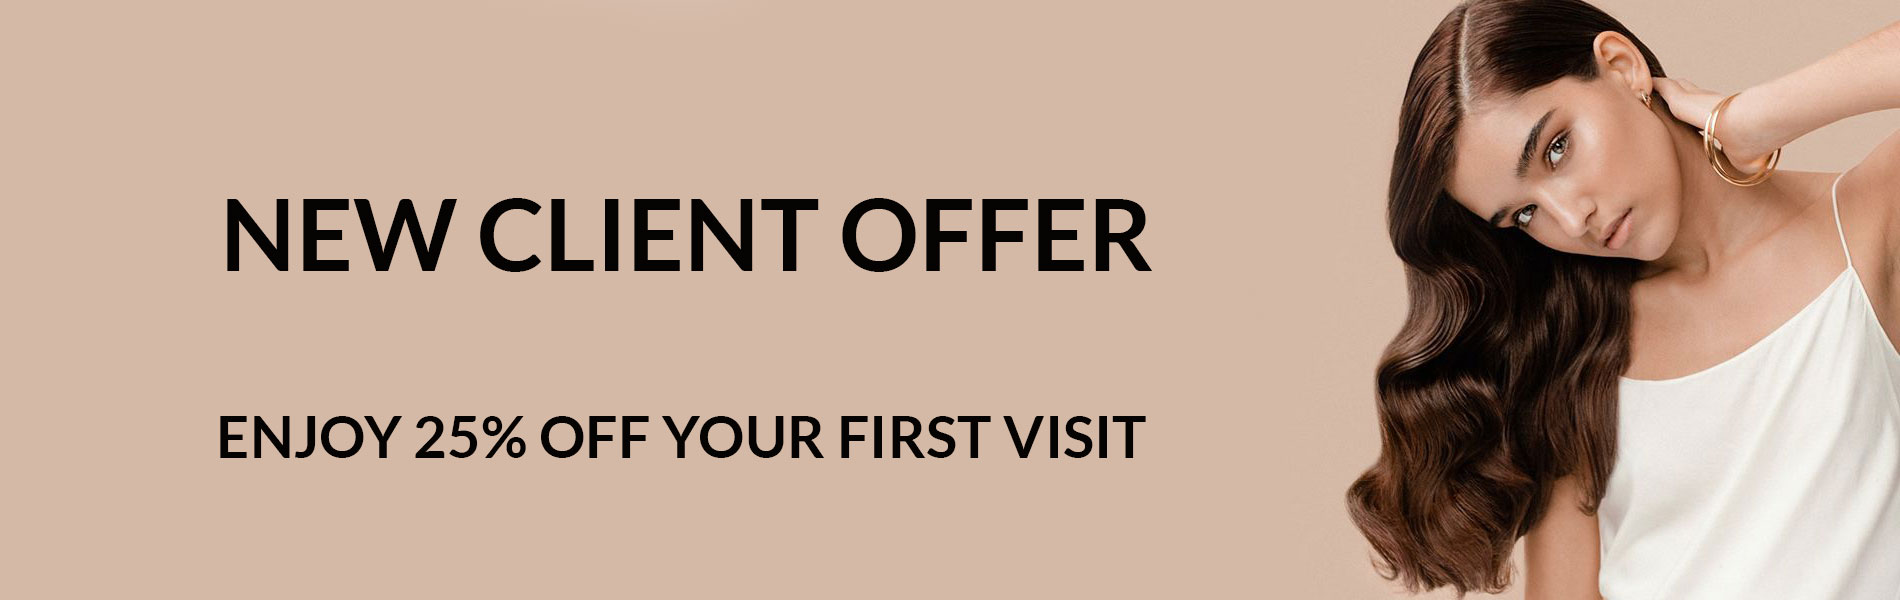 new client offer New To Collections Enjoy 25 OFF 4